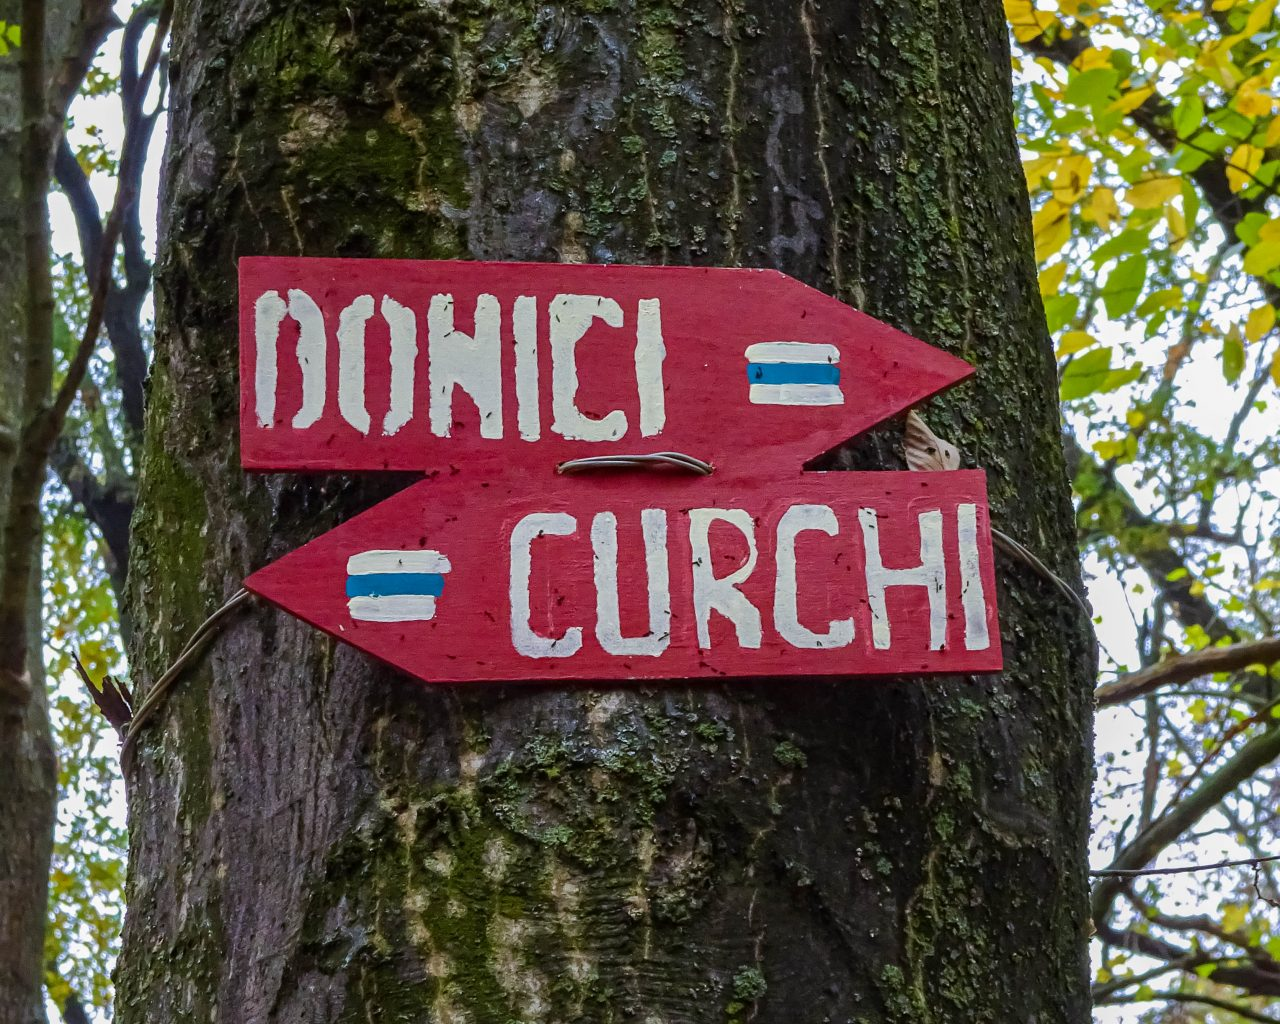 Routeborden-Curchi-Donici-in-bos